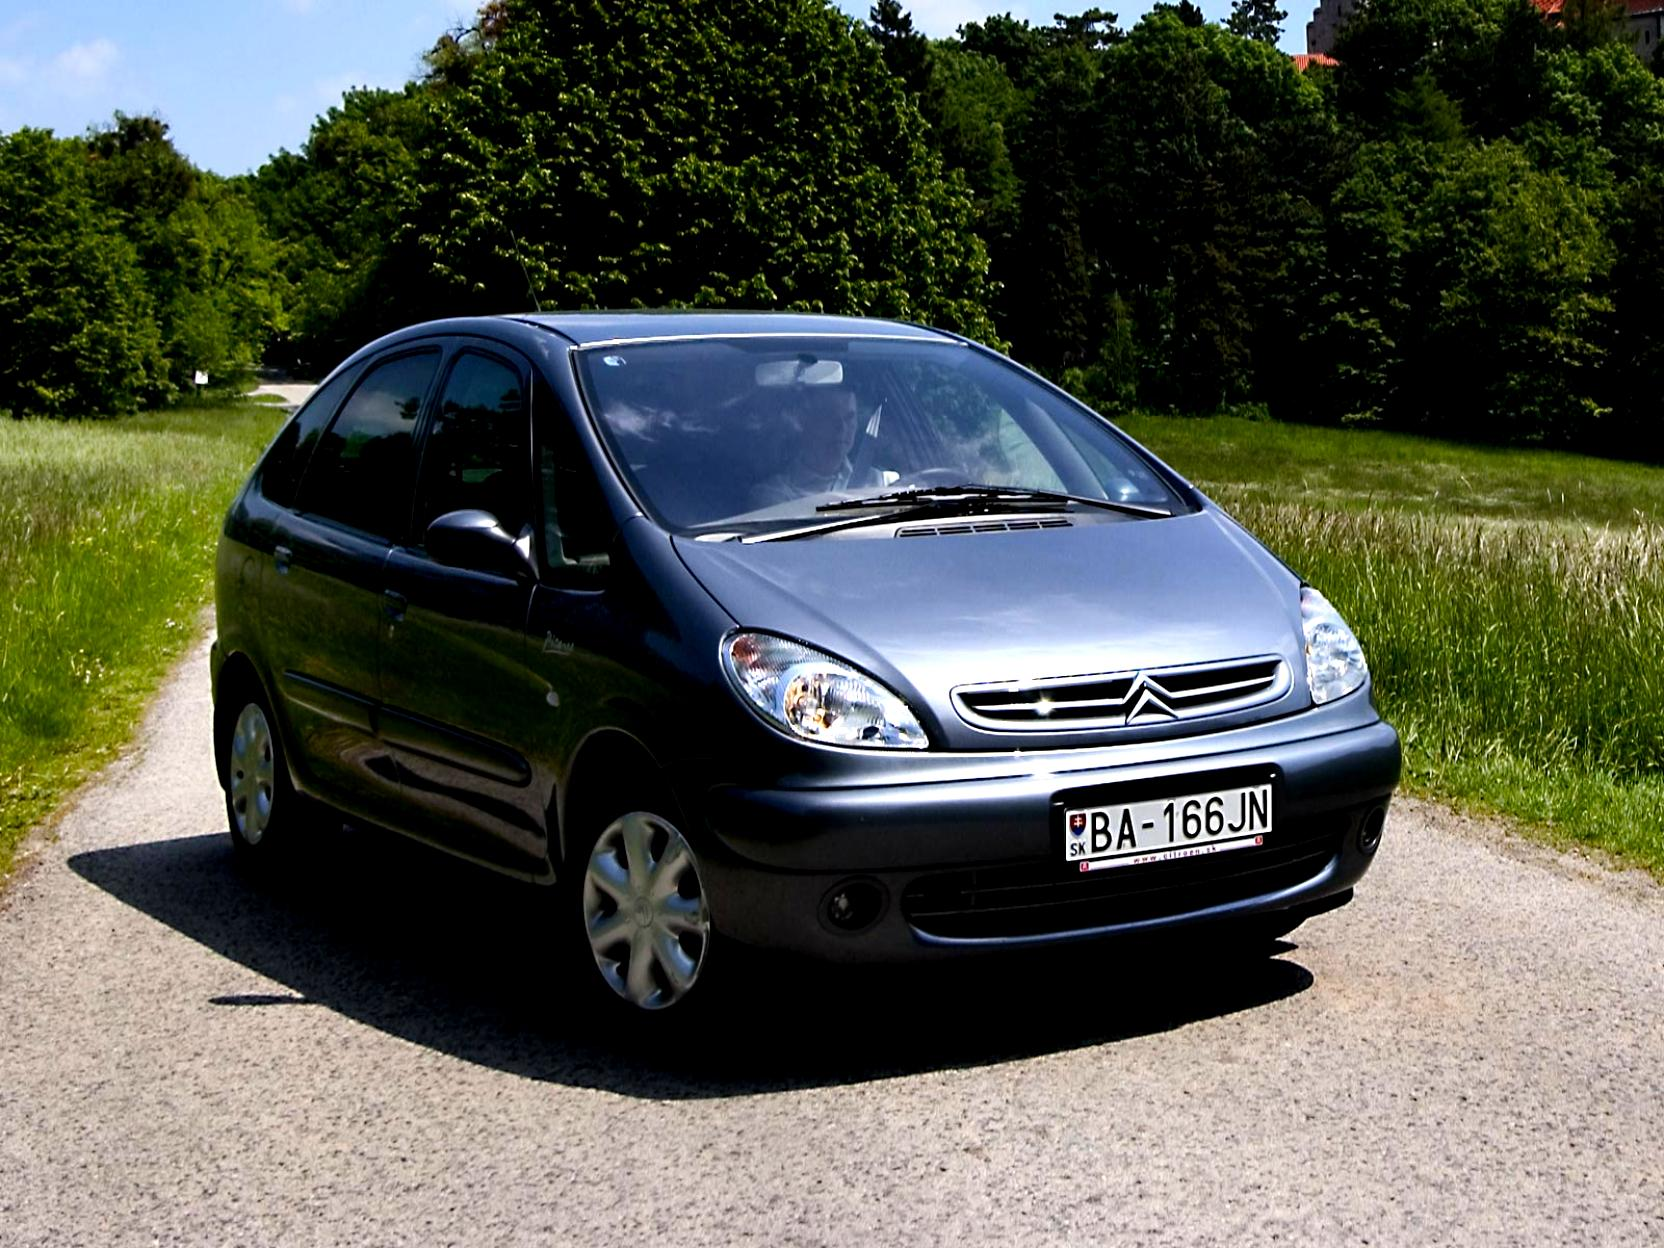 citroen xsara picasso 1999 photos 10 on. Black Bedroom Furniture Sets. Home Design Ideas